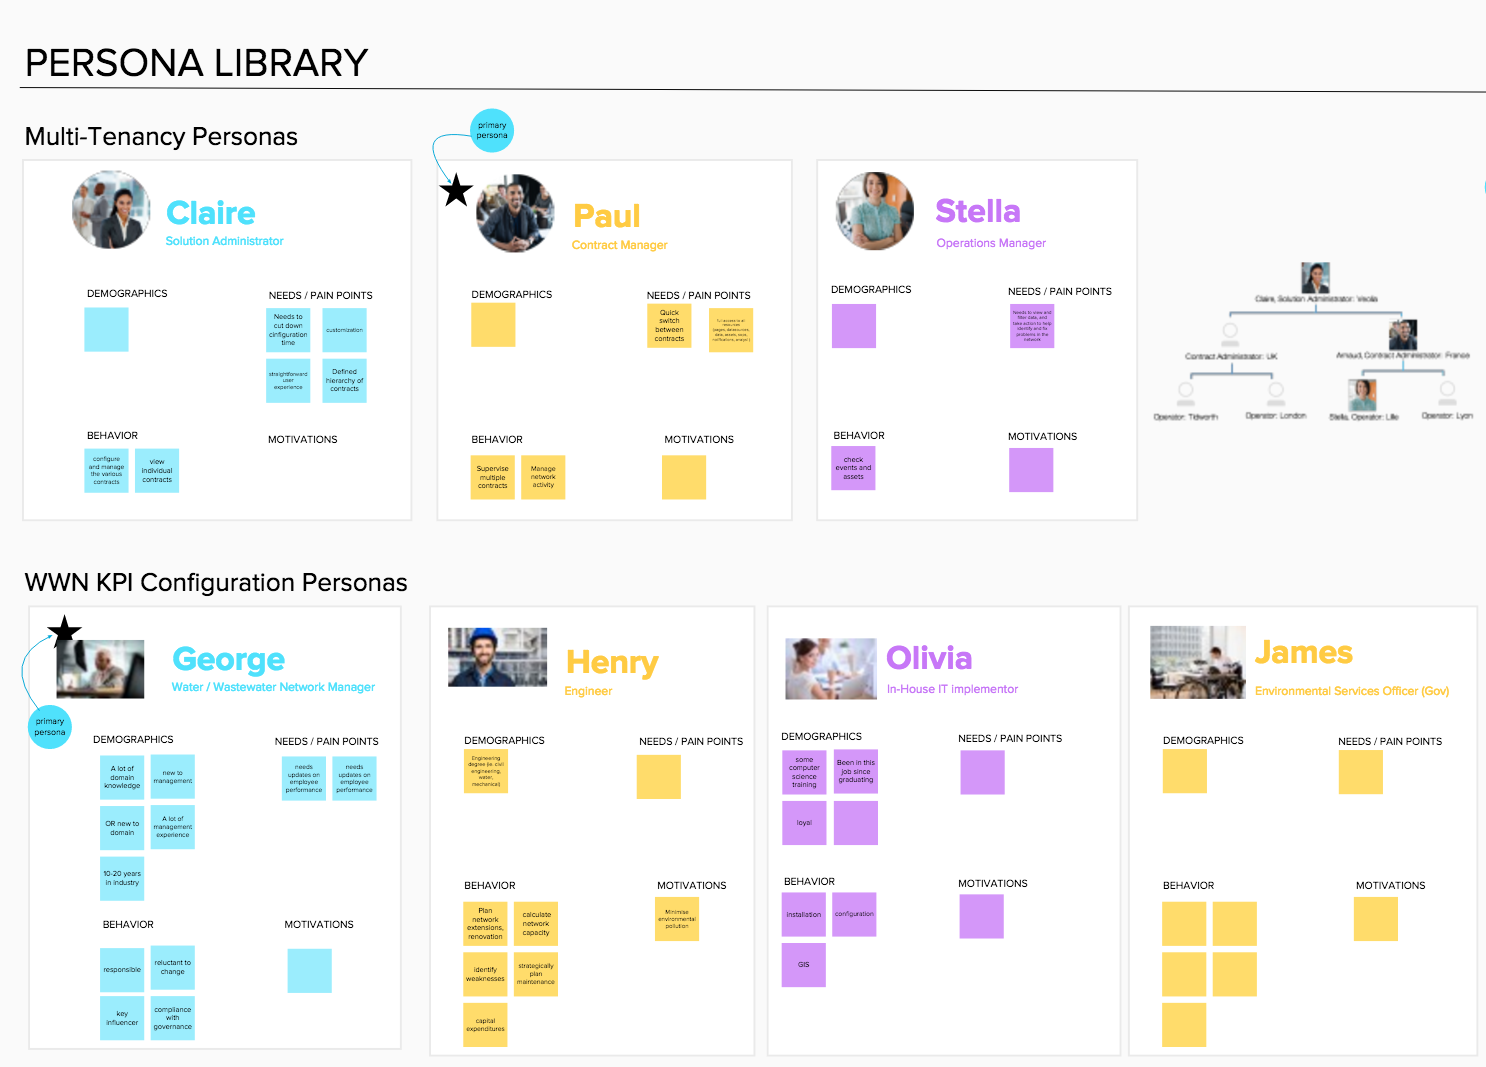 We use Mural.ly to store our persona library. Everyone on the team is able to contribute and we can work concurrently in collaborative sessions from remote locations.